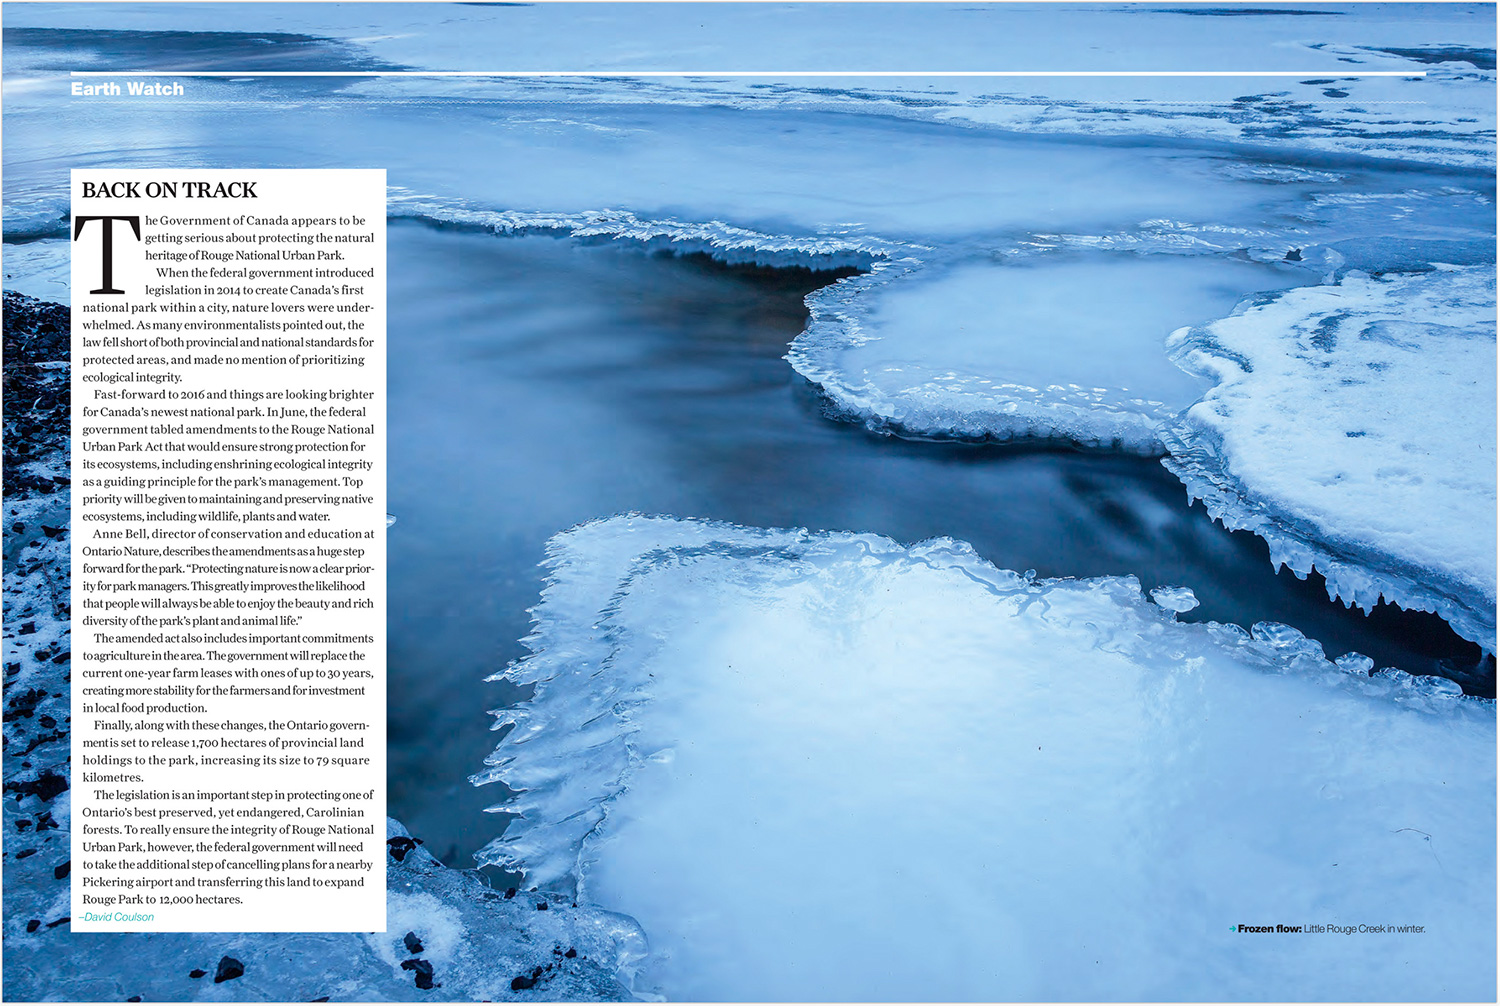 Ontario Nature Magazine Winter 2016, Earth Watch by David Coulson